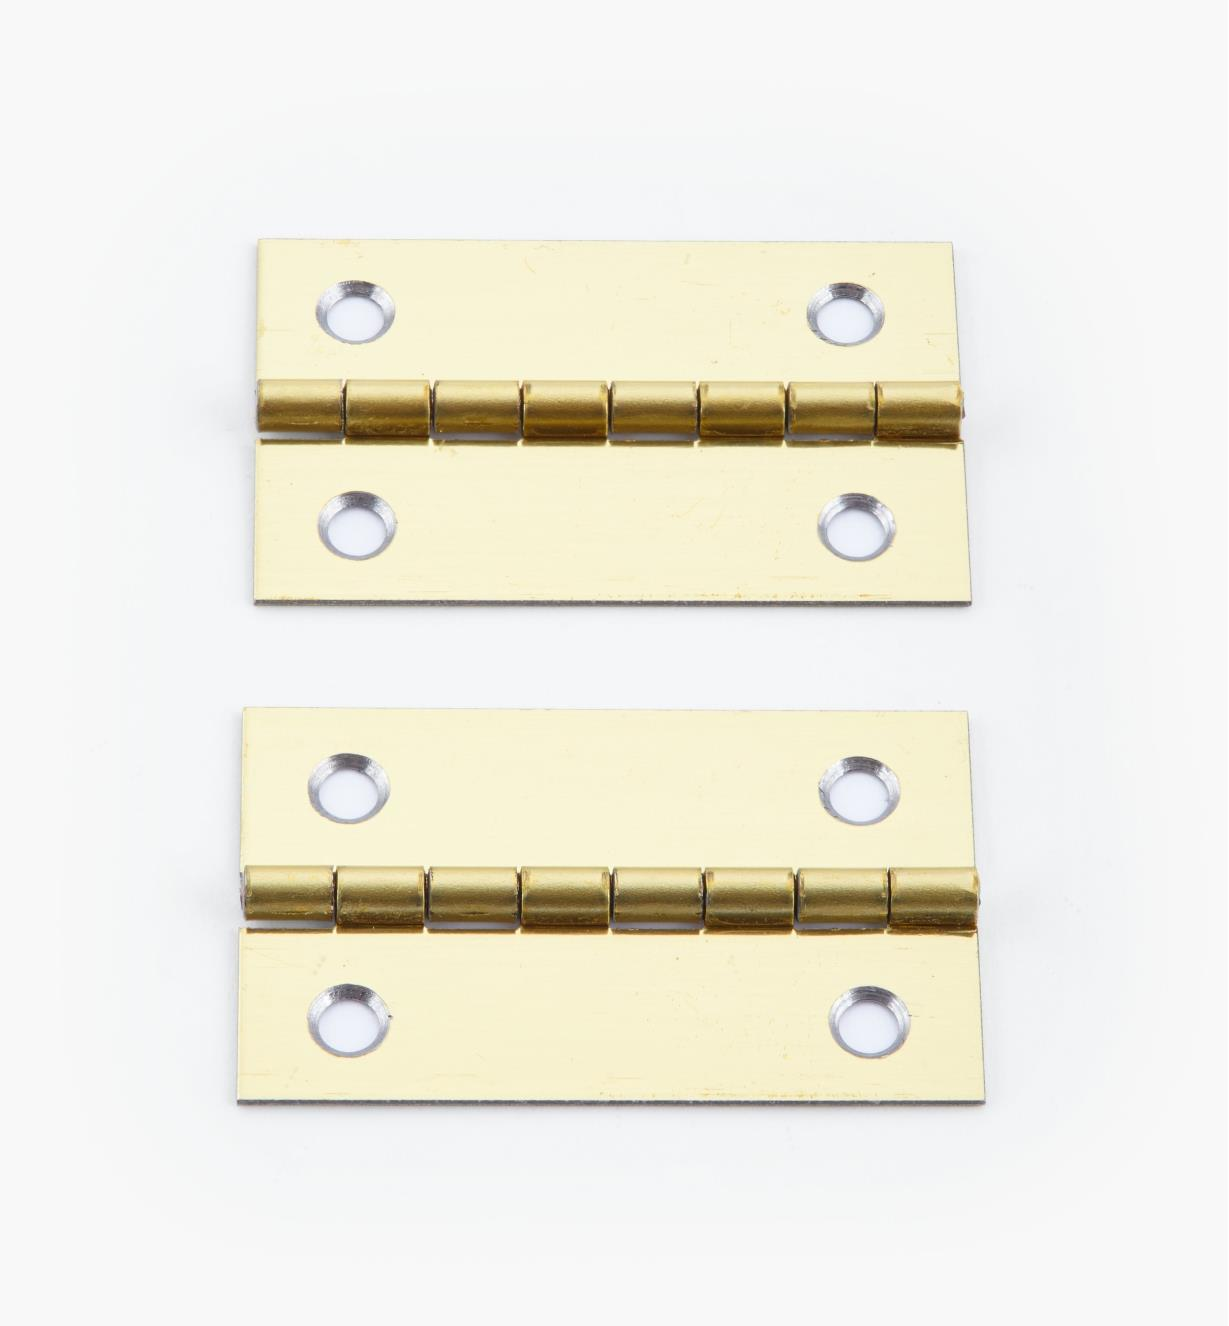 00D3022 - 40mm x 25mm Small Box Hinges, pr.